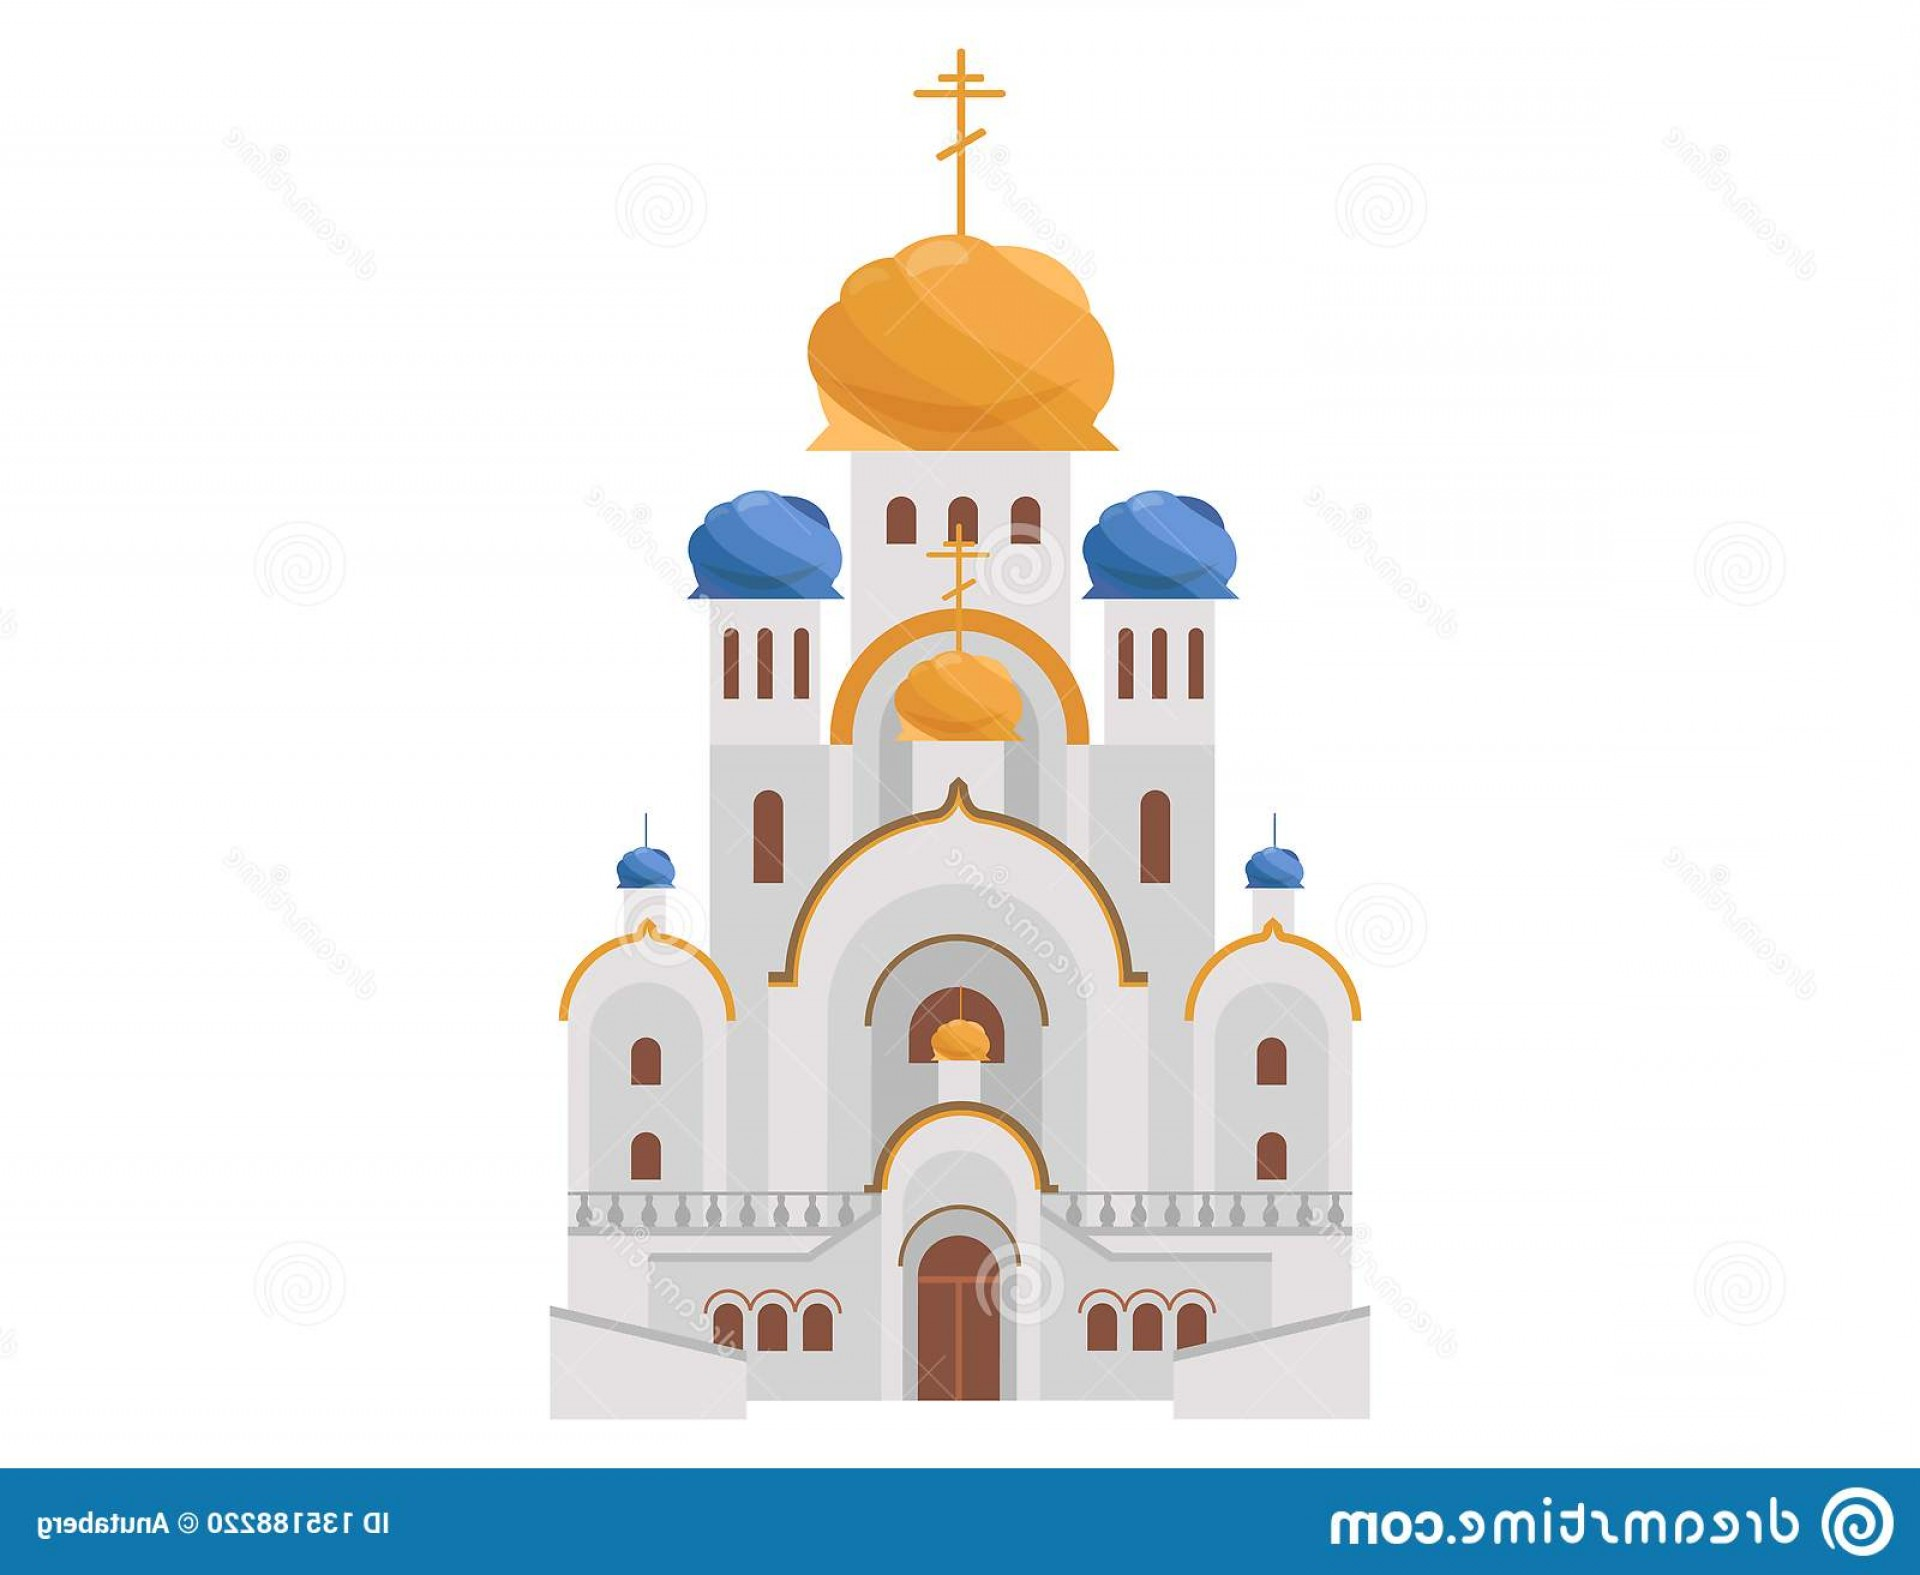 Vector Holy Shrine: Cartoon Luxury Church Gold Blue Domes Holy Place Morning Mass Vector Illustration Christianity Faith Religion Image